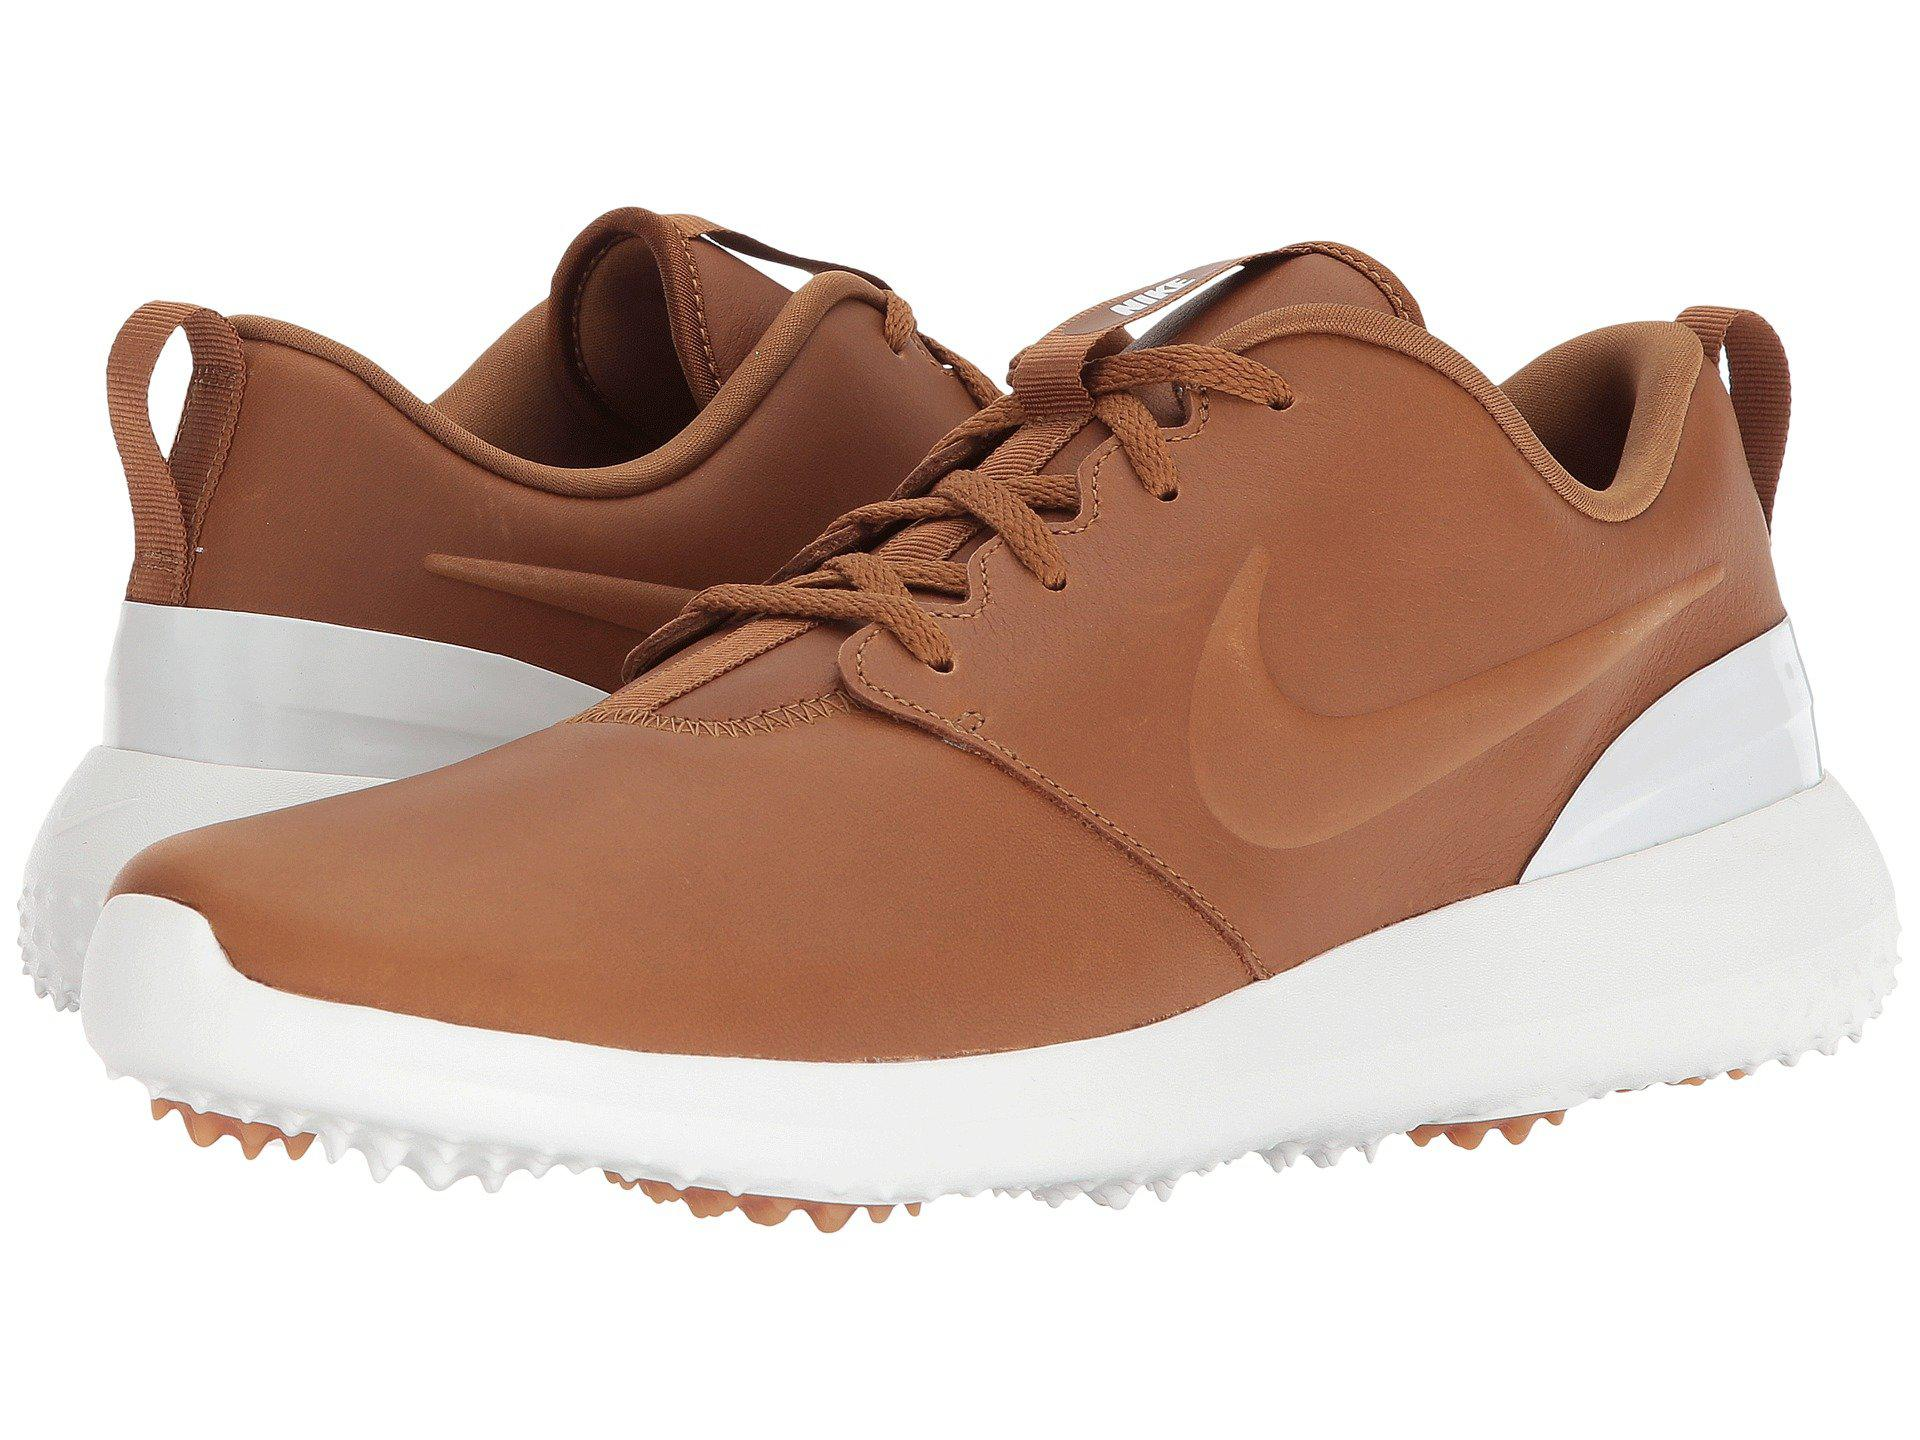 Lyst - Nike Roshe G Prm (brown brown summit White) Men s Golf Shoes ... 3791ede2a